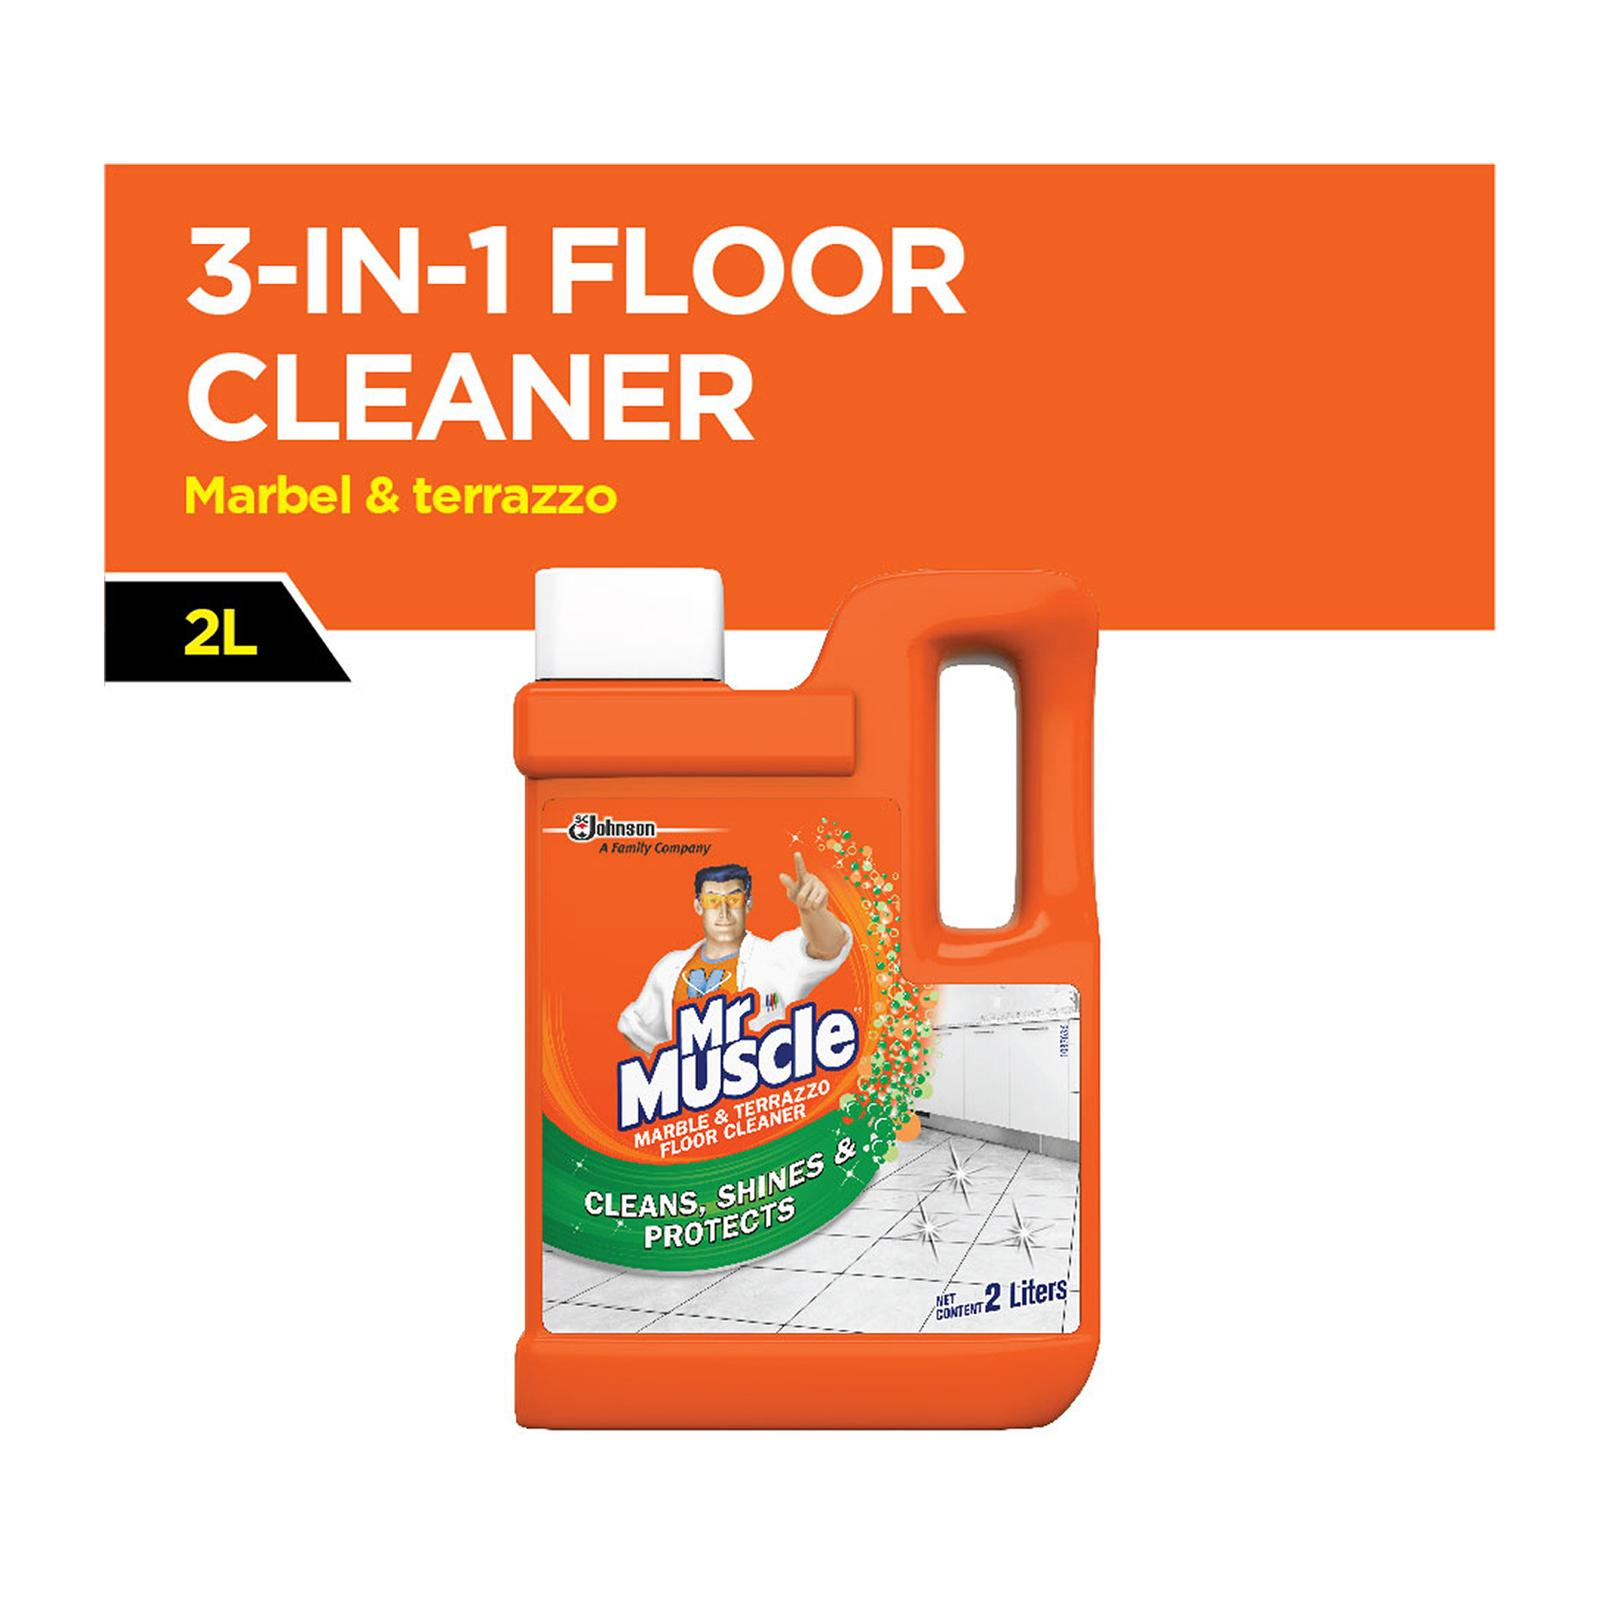 Mr Muscle Marble and Terrazzo 3 in 1 Floor Cleaner